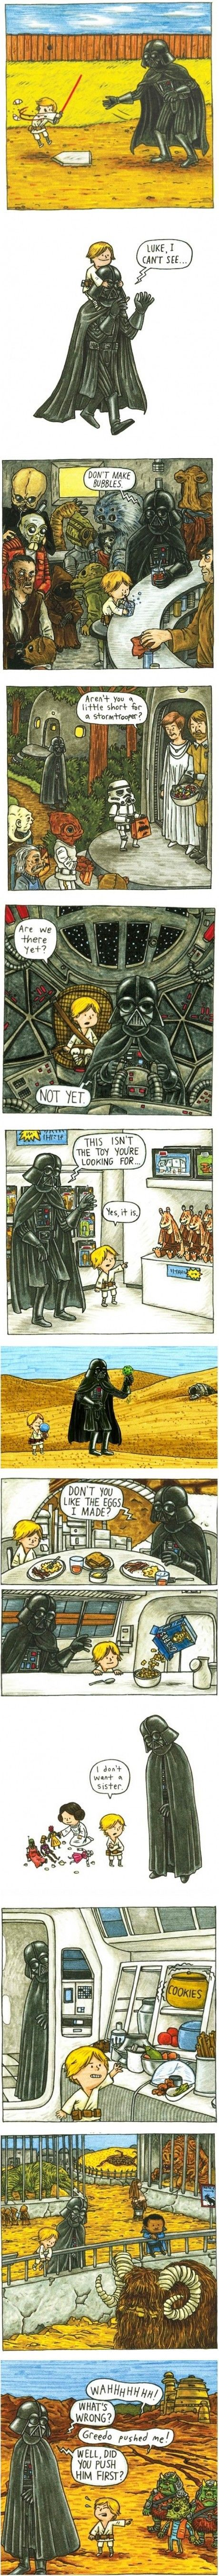 If Darth Vader would have been there.